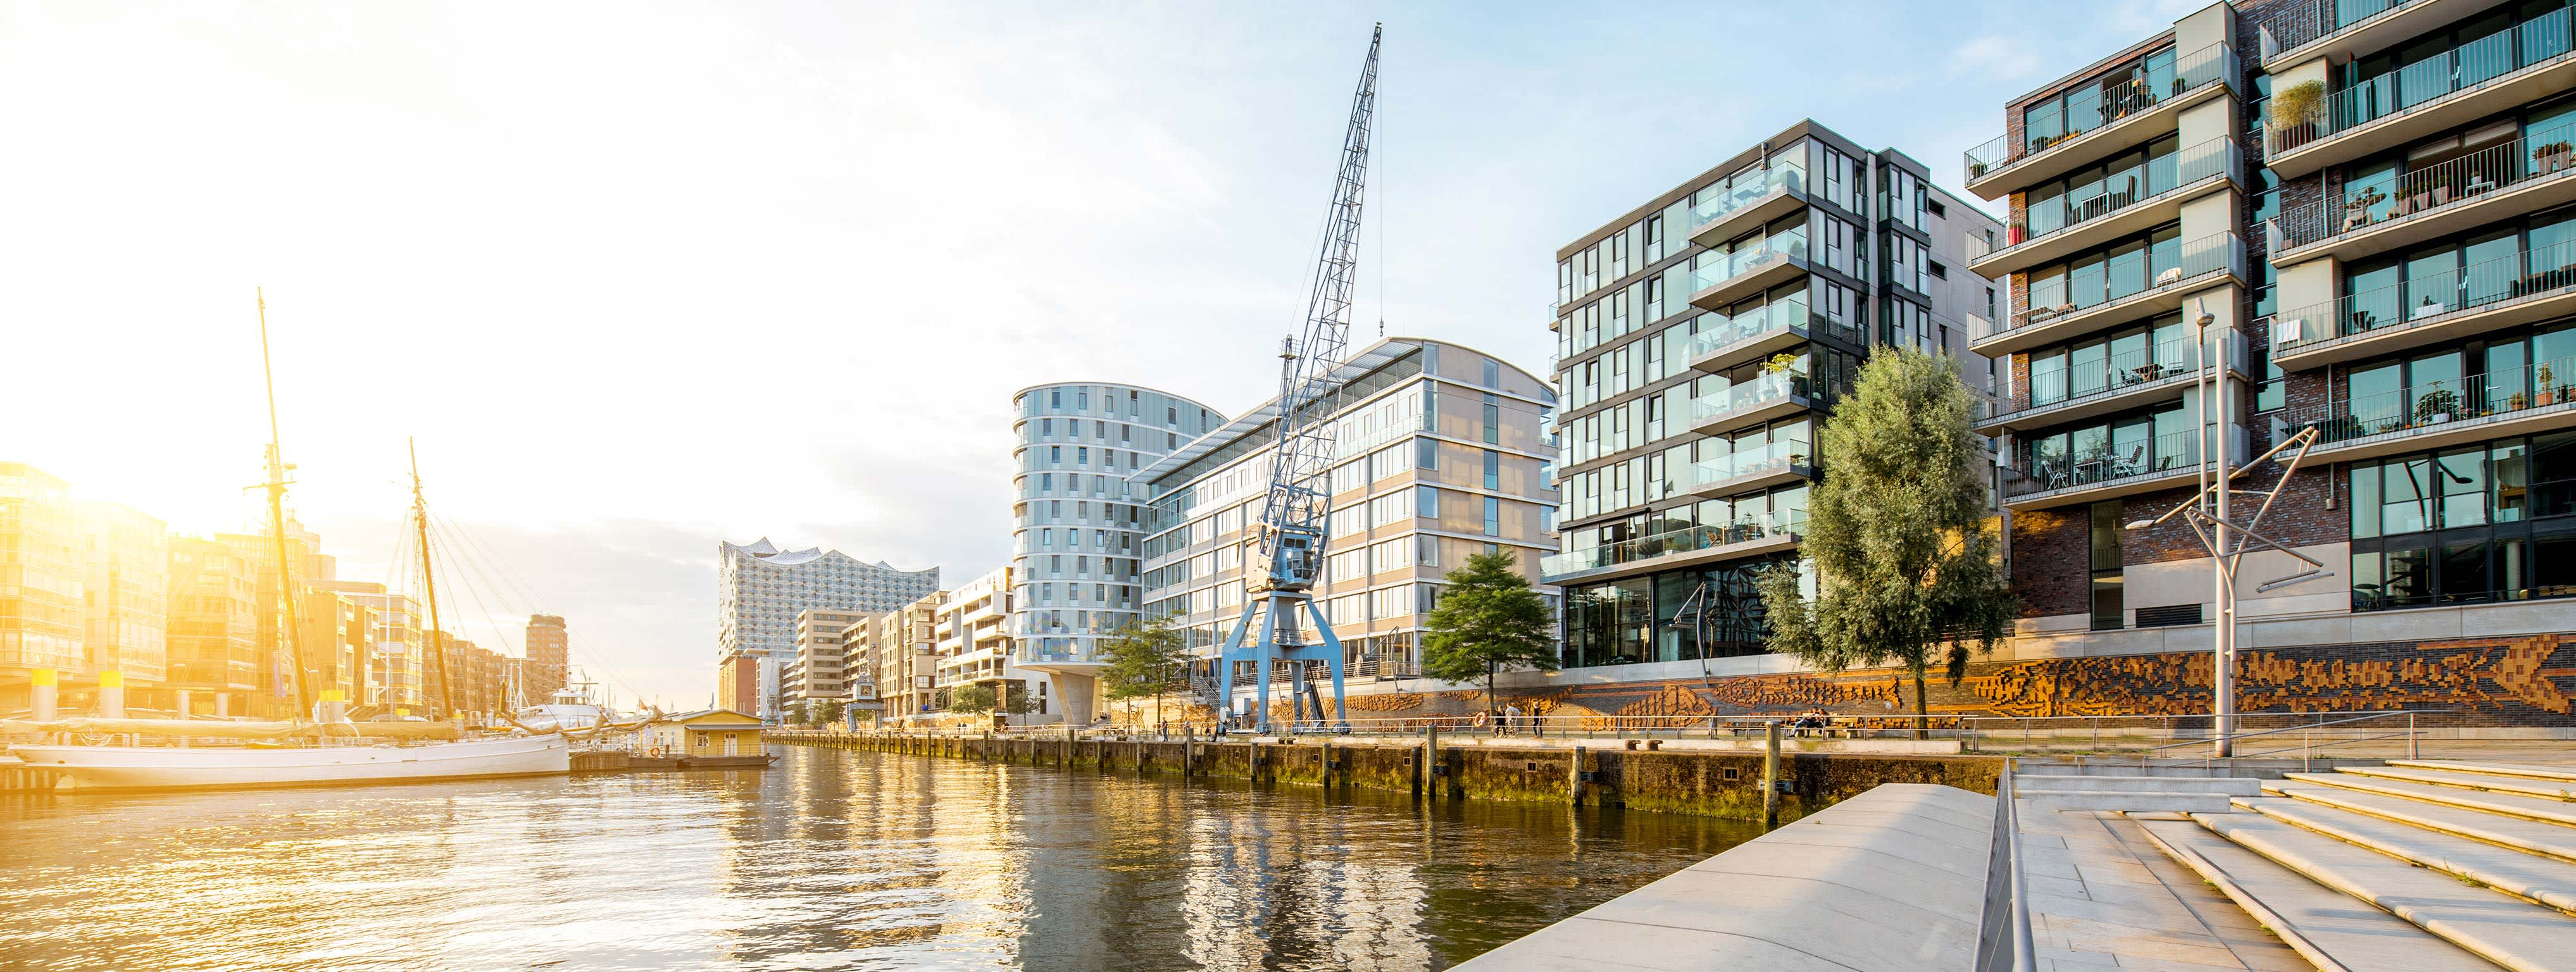 Panorama der Hafencity in Hamburg